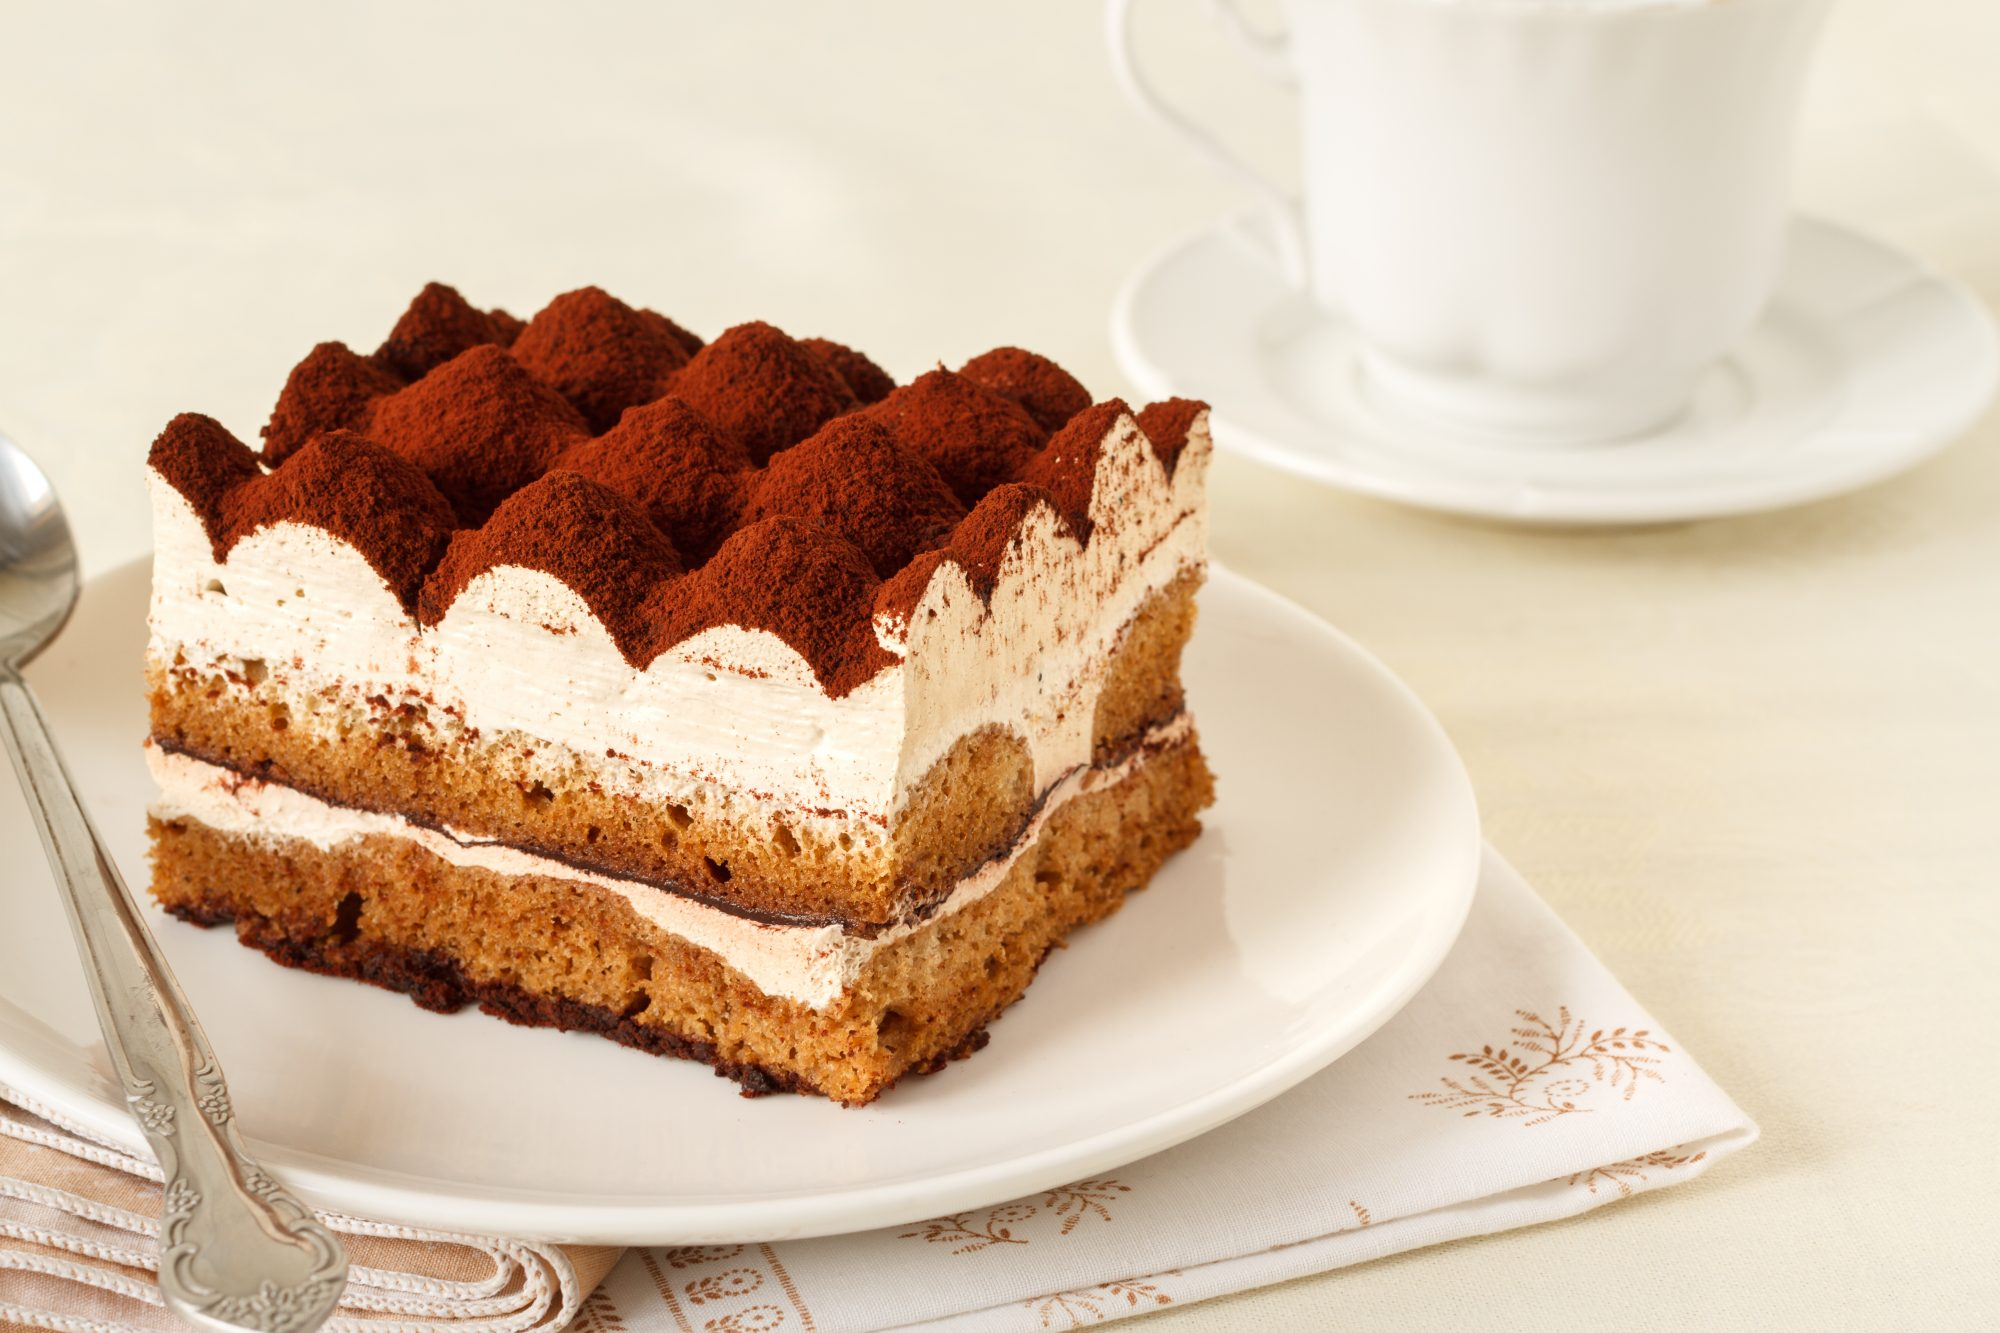 How to Make Authentic Italian Tiramisu